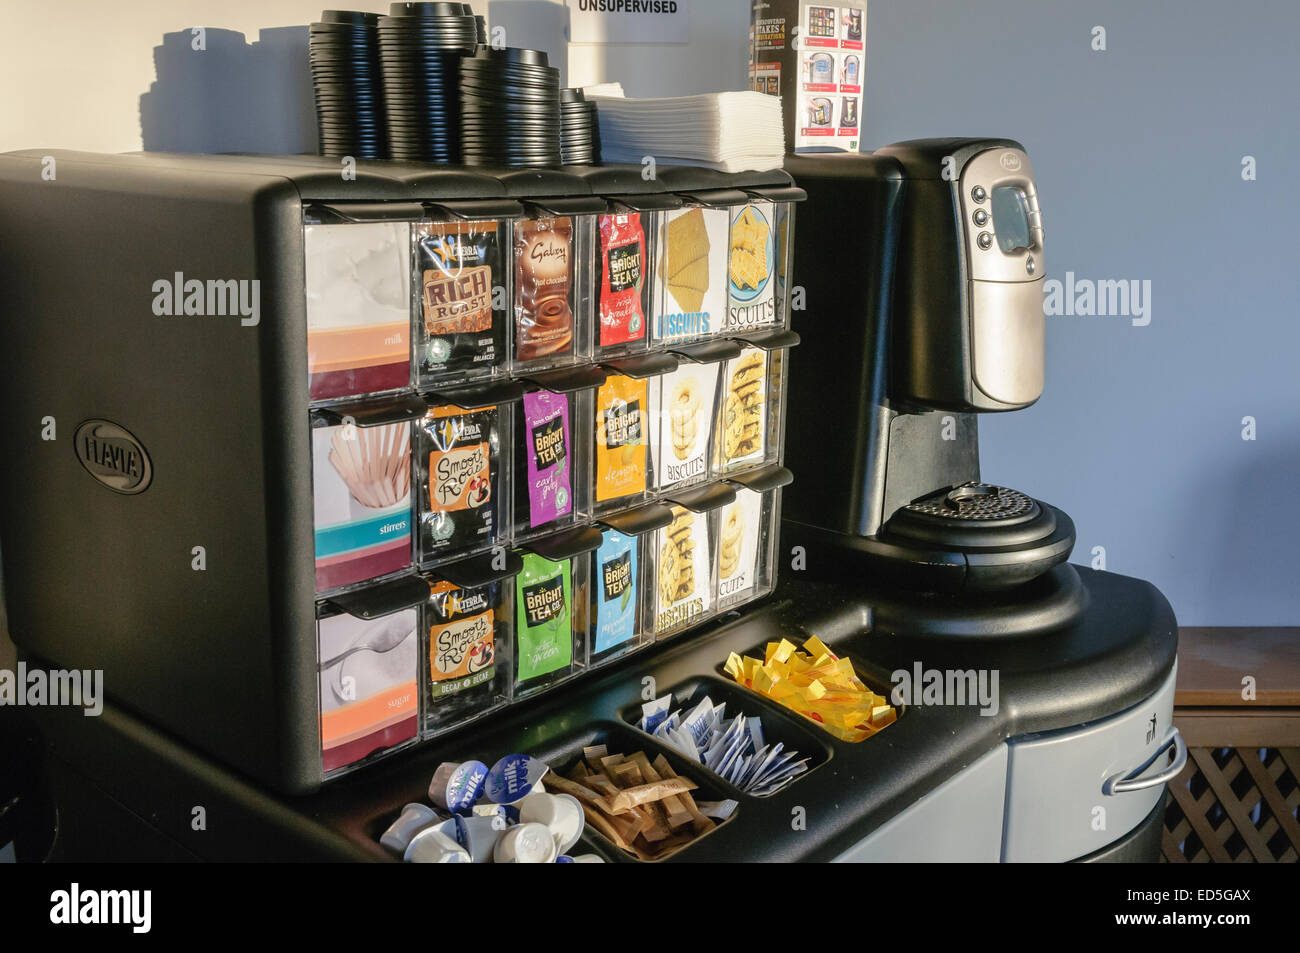 Flavia One Cup Coffee Maker : Flavia coffee machine with a selection of sachets of tea, coffee and Stock Photo, Royalty Free ...